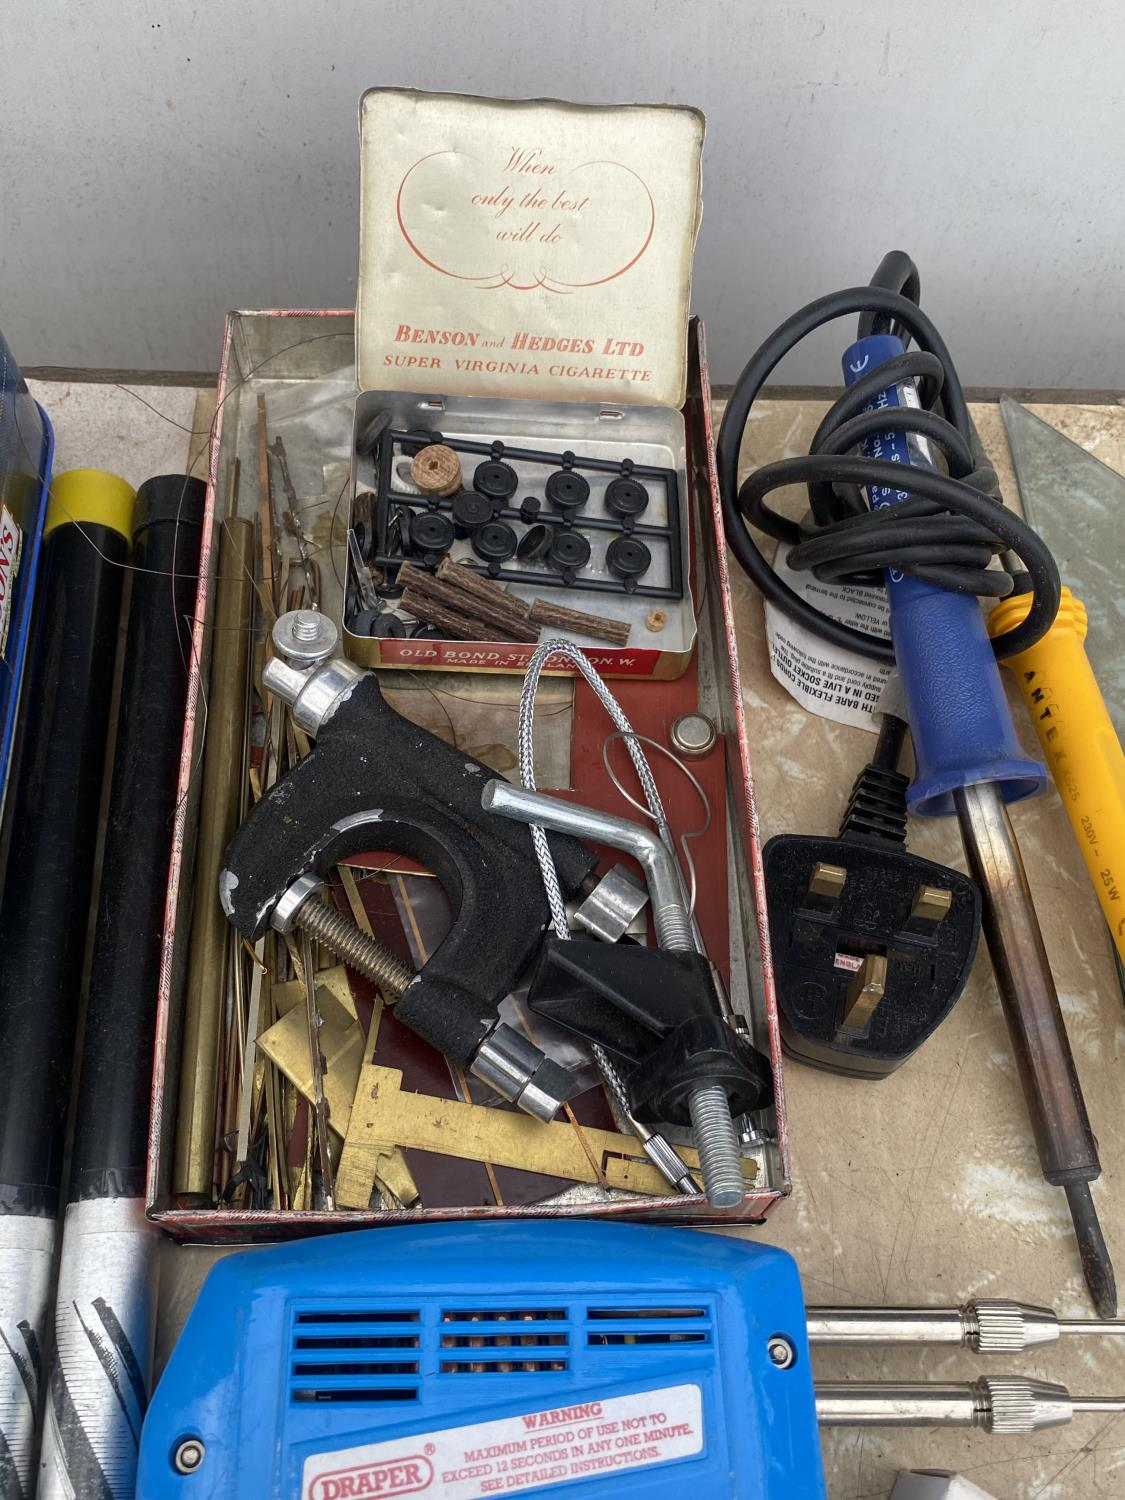 AN ASSORTMENT OF ARTS AND CRAFTS EQUIPMENT TO INCLUDE SOLDERING IRONS, A CLAMP AND MODEL PAINT AND - Image 4 of 6